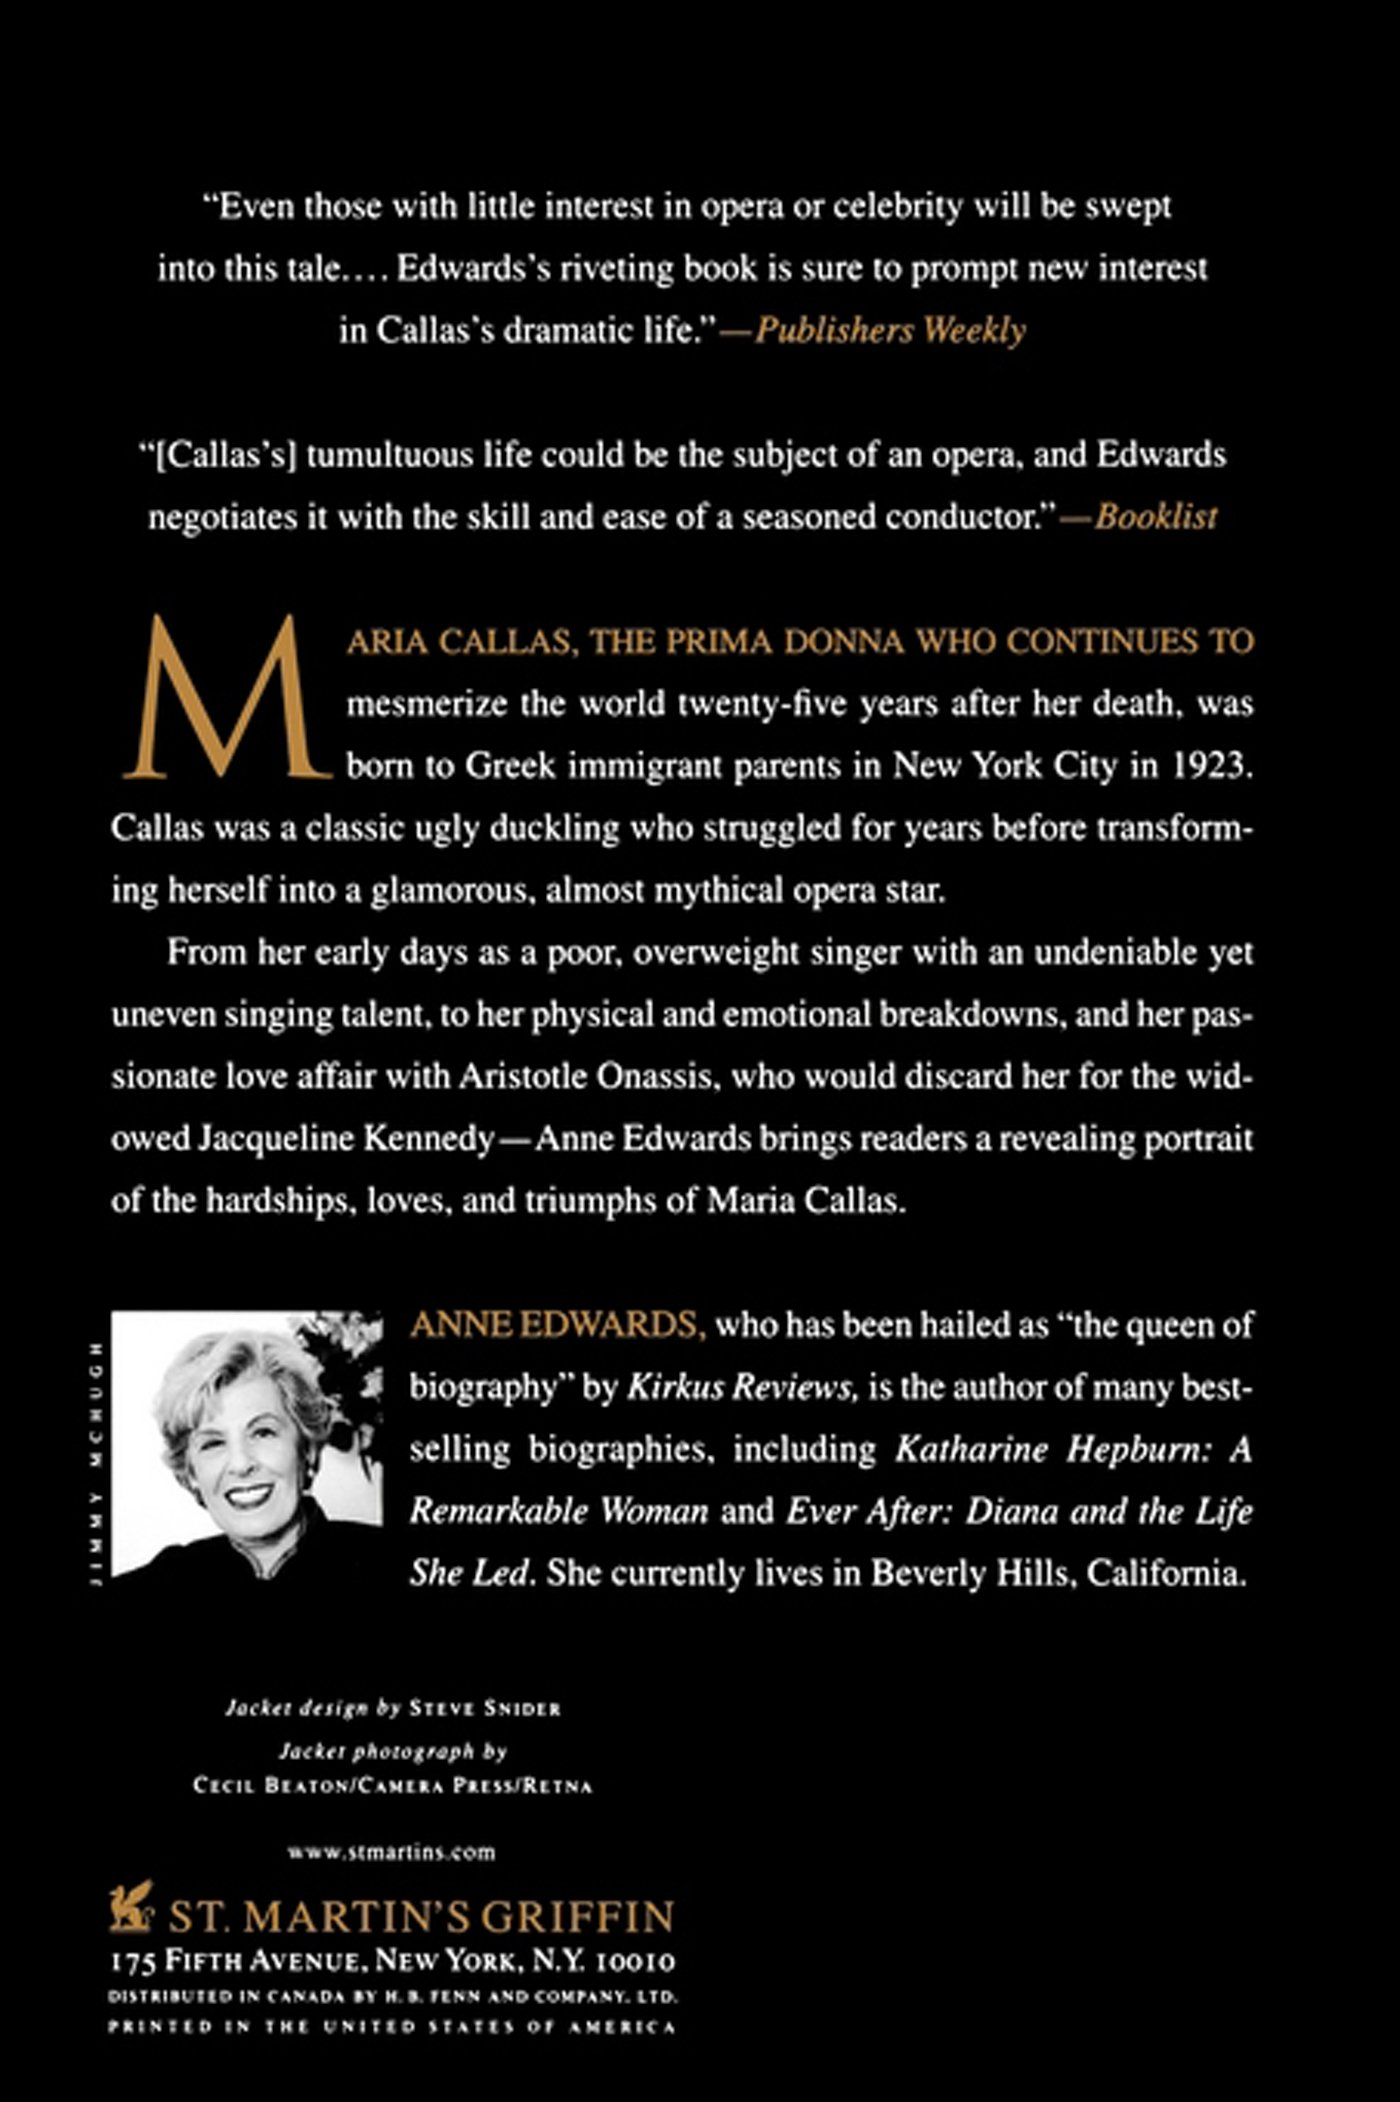 Maria callas an intimate biography anne edwards 9780312310028 maria callas an intimate biography anne edwards 9780312310028 amazon books fandeluxe Image collections